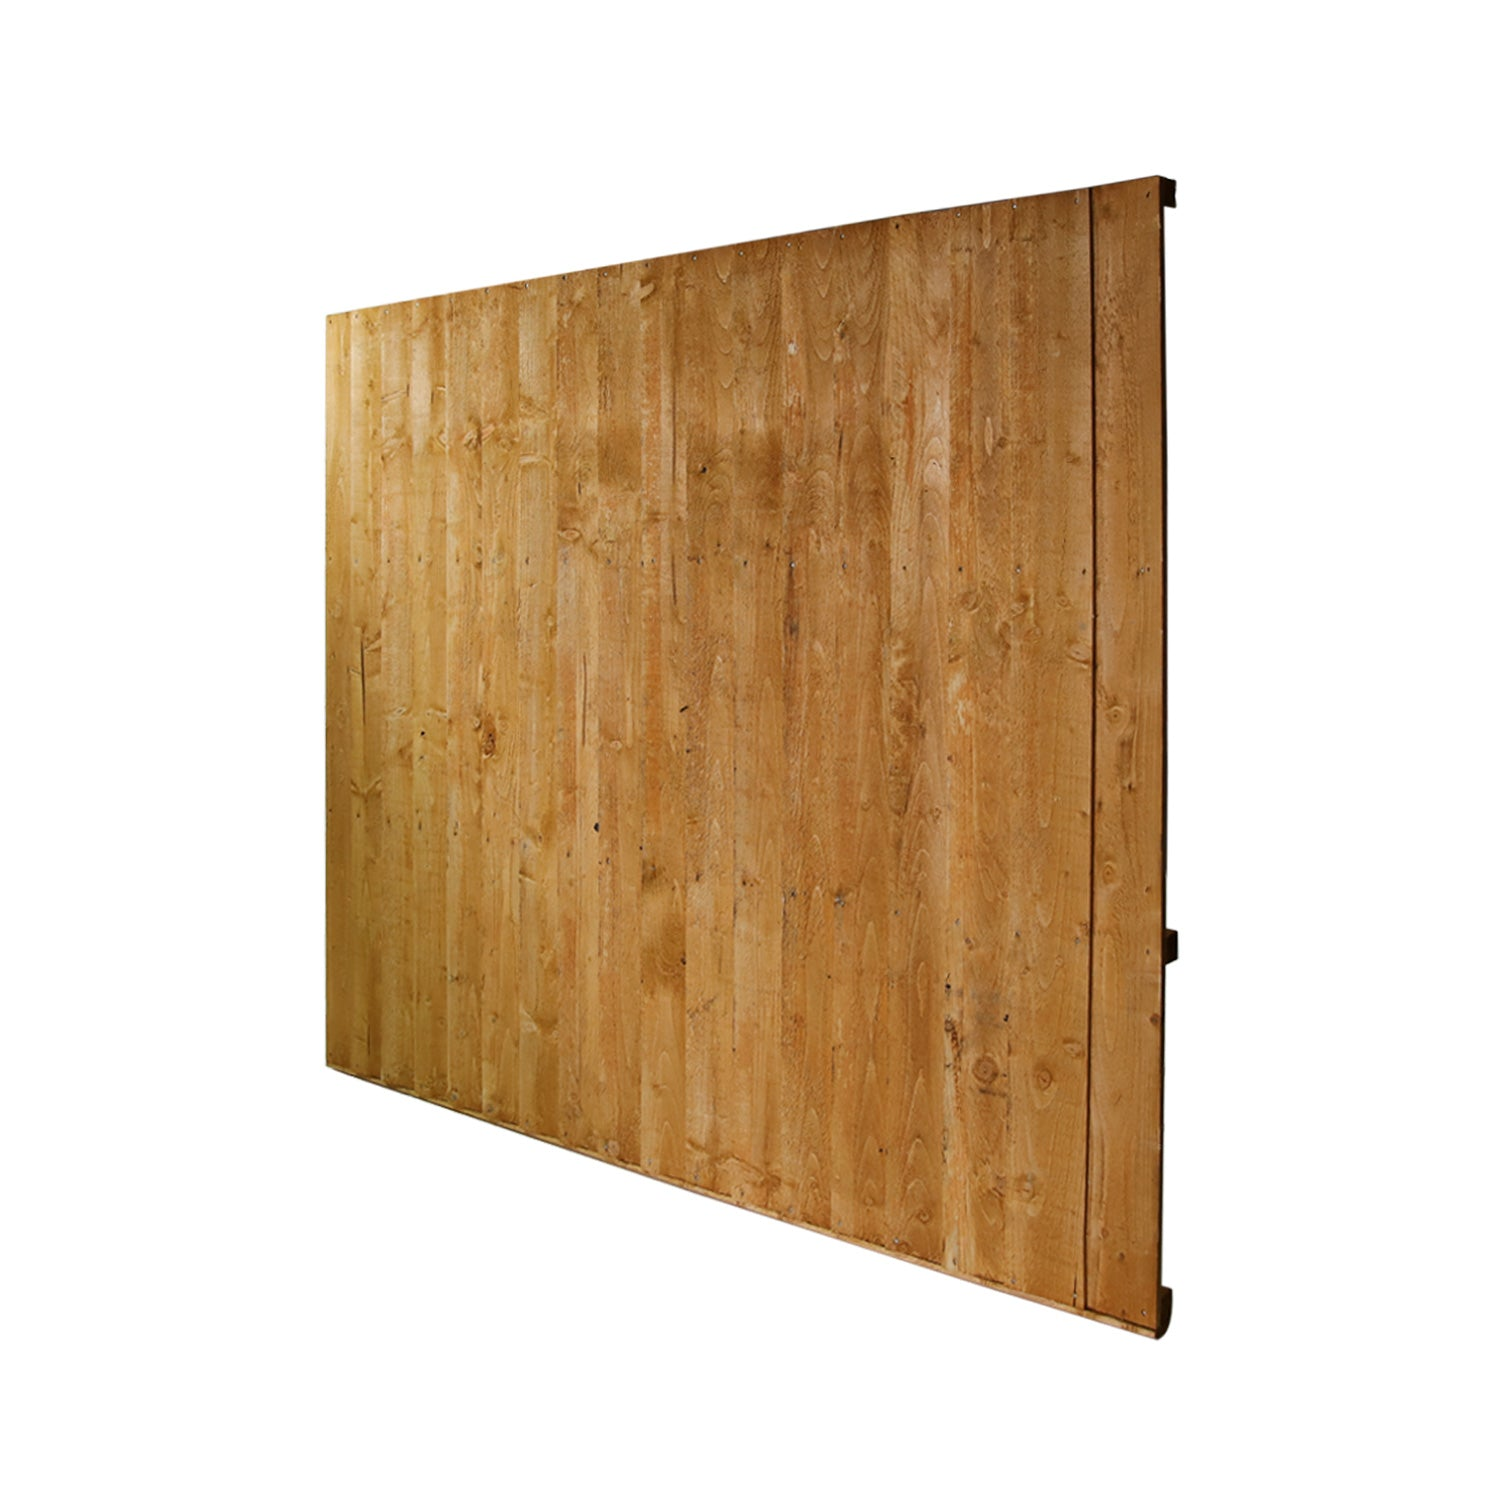 6' x 5' Featheredge Fence Panel